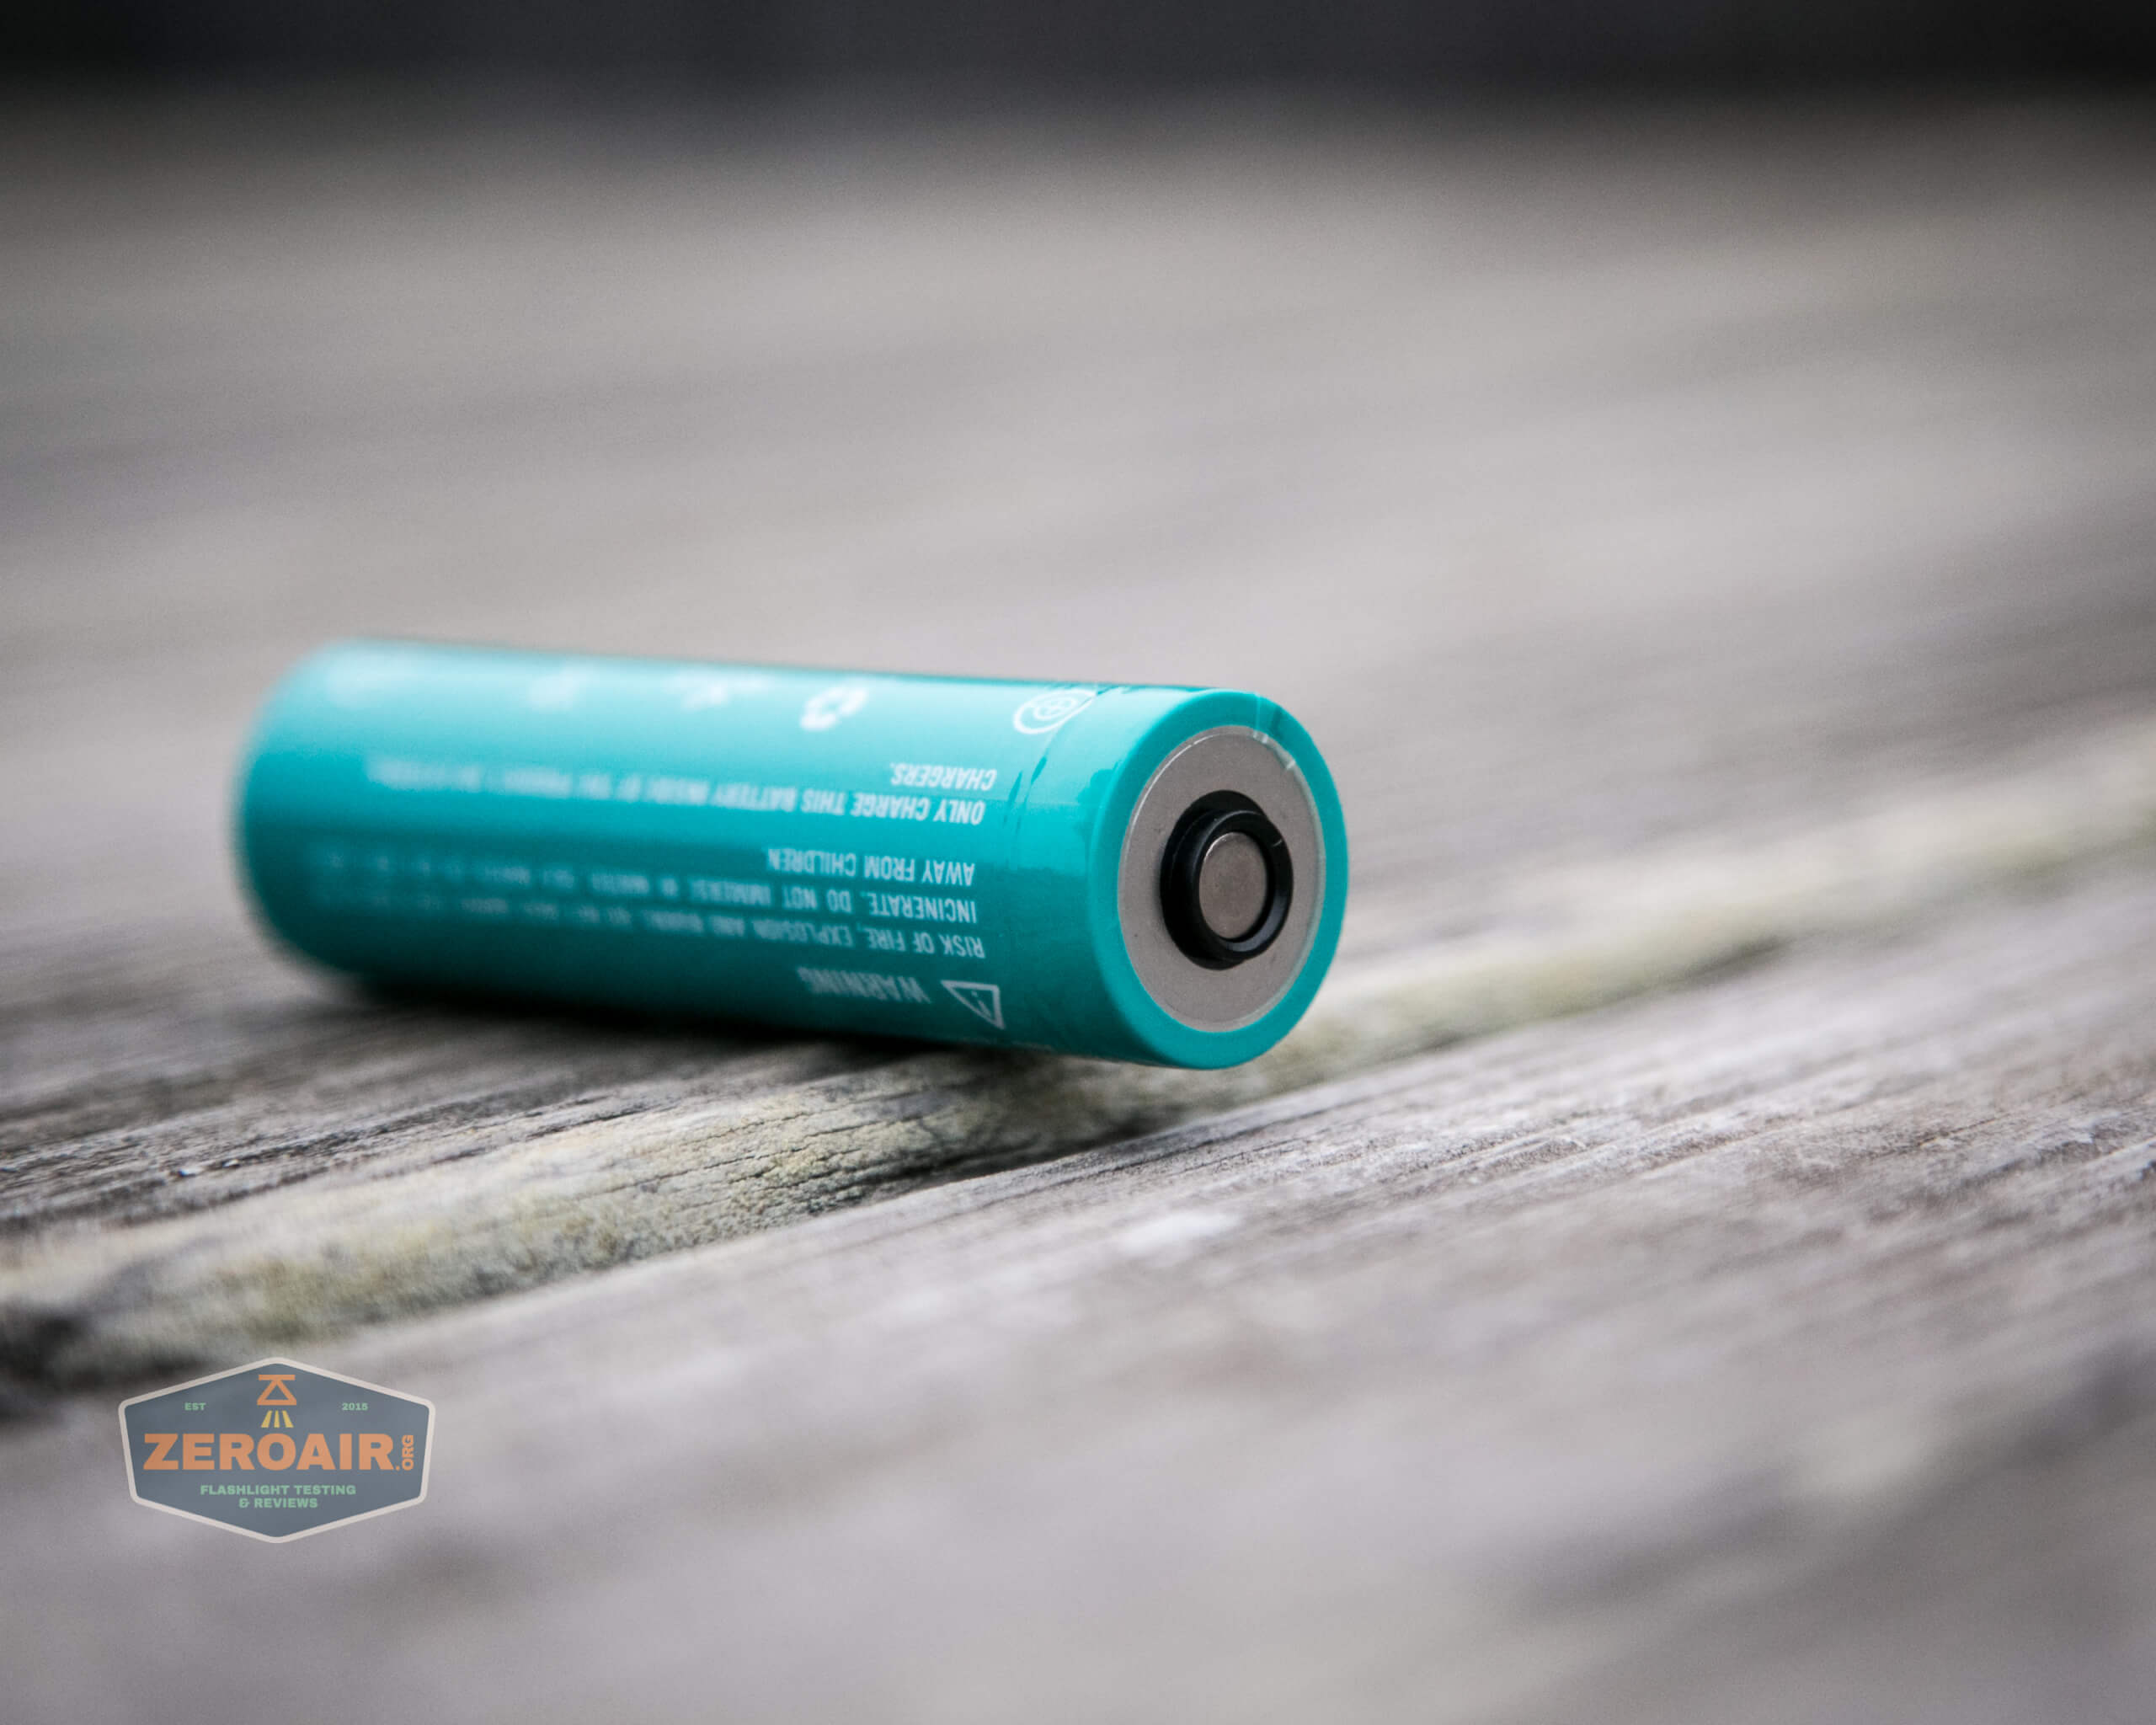 Olight 5000mah 21700 cell positive end with both contacts